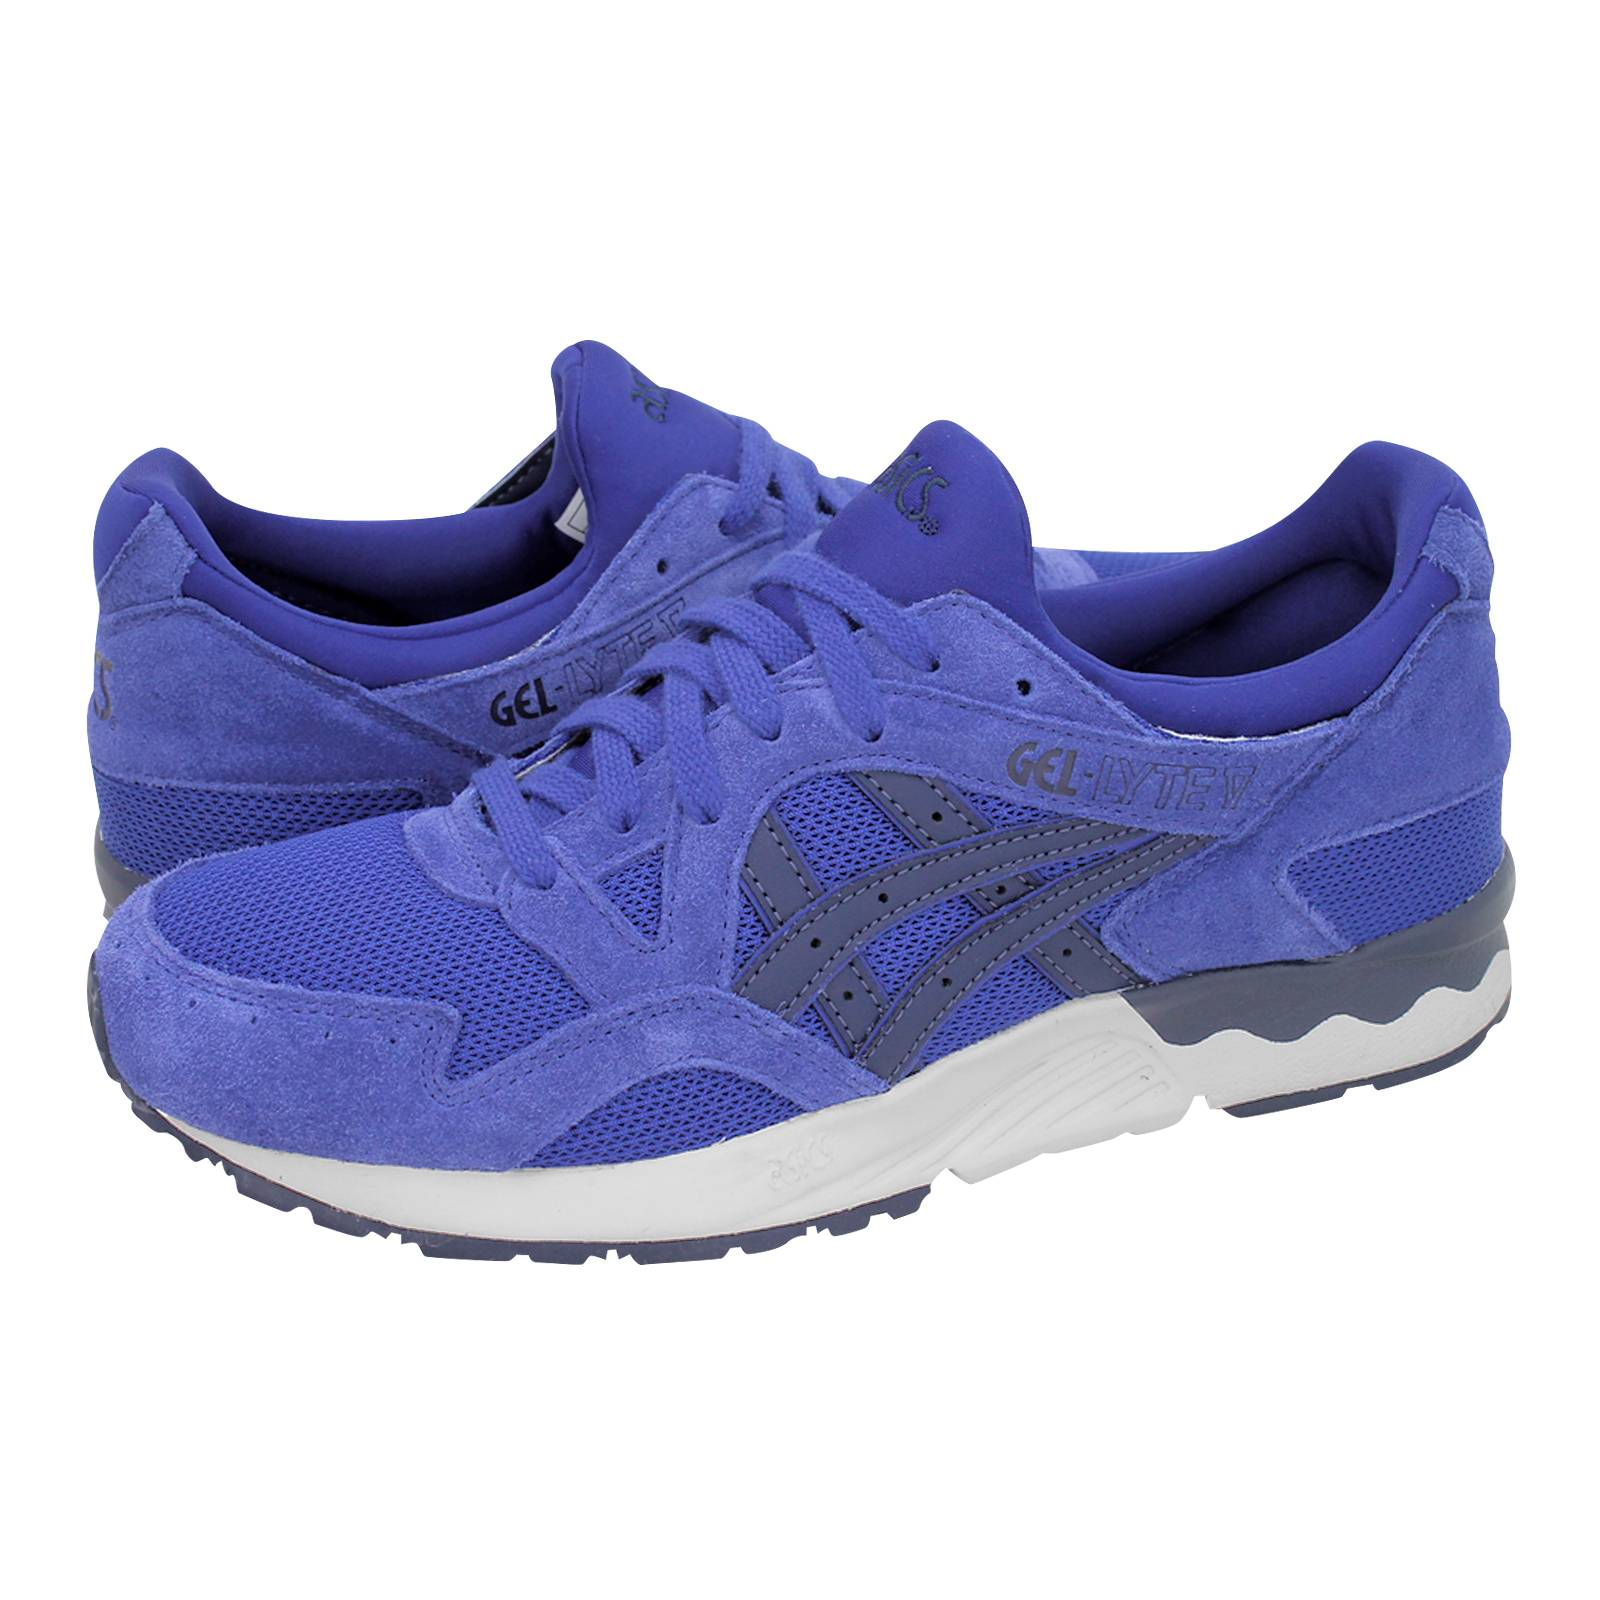 low priced 21fa2 b2f43 Asics Gel-Lyte V athletic shoes